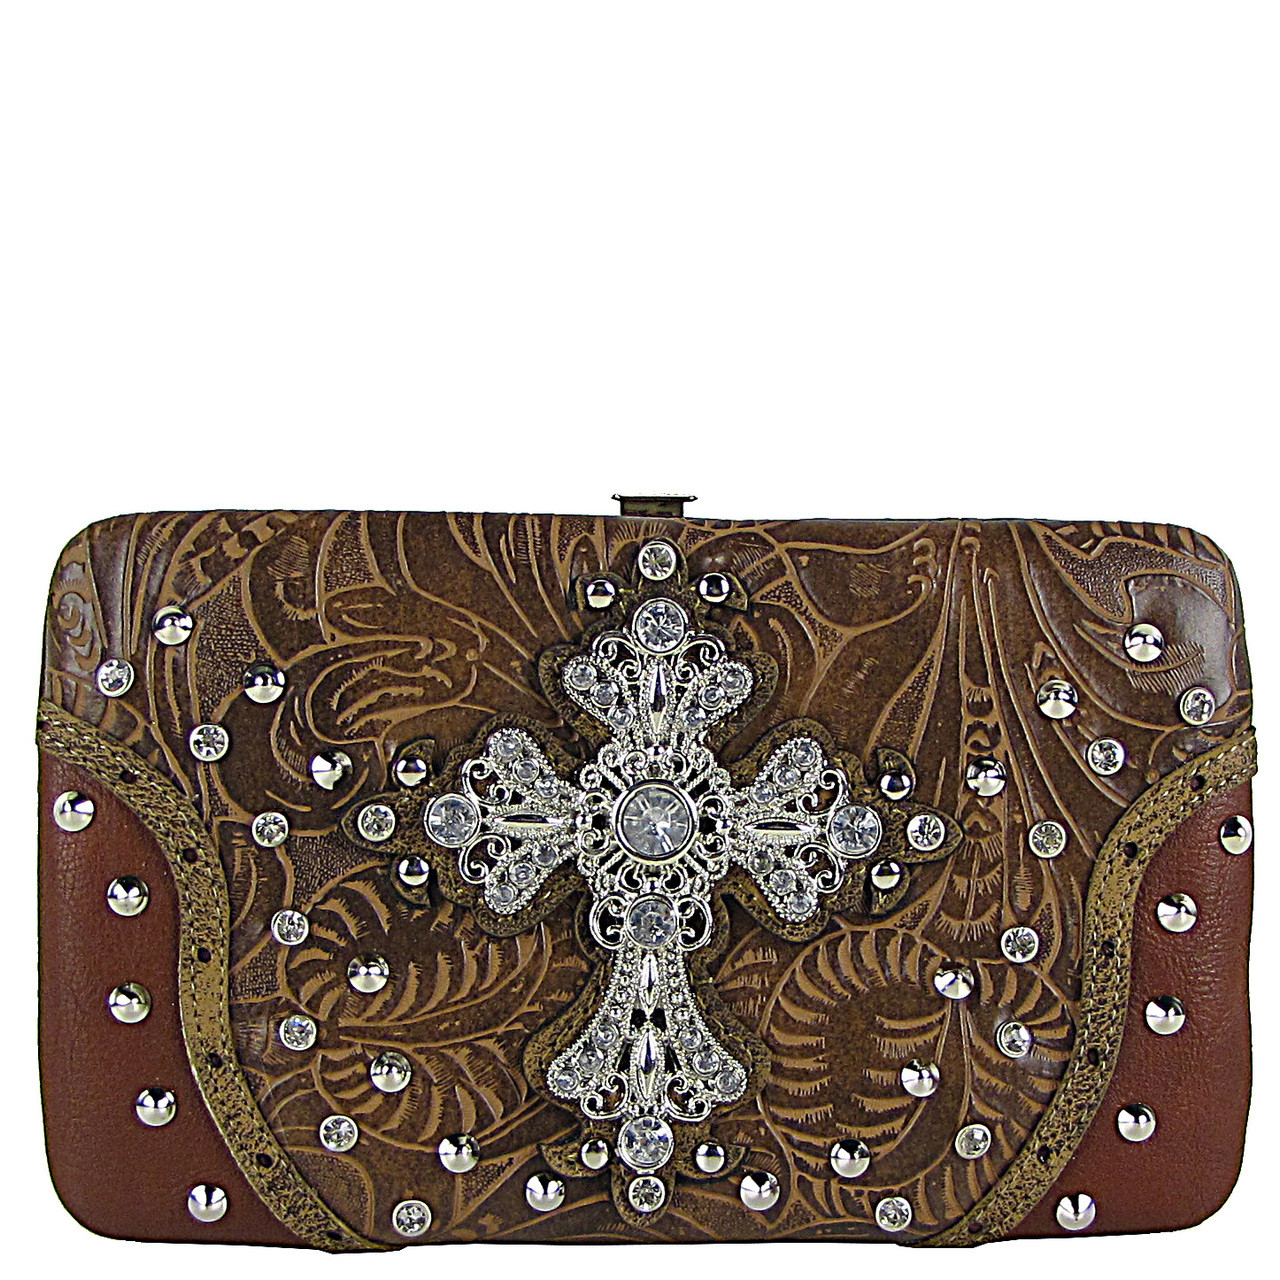 BROWN RHINESTONE STUDDED CROSS FLAT THICK WALLET FW2-04115BRN